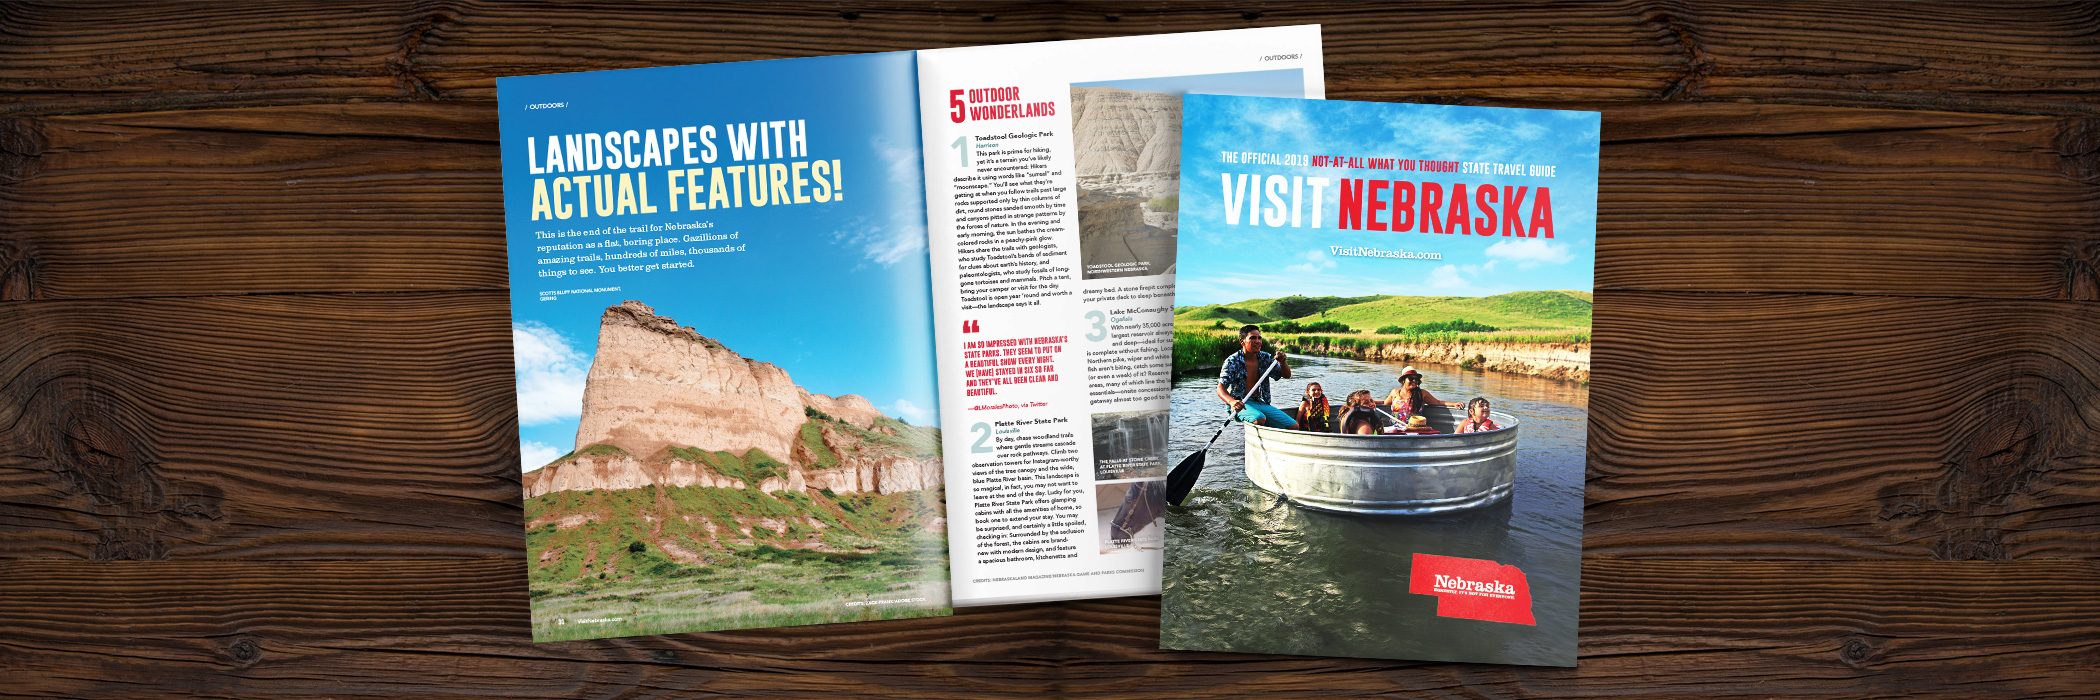 Request a Travel Guide | VisitNebraska com